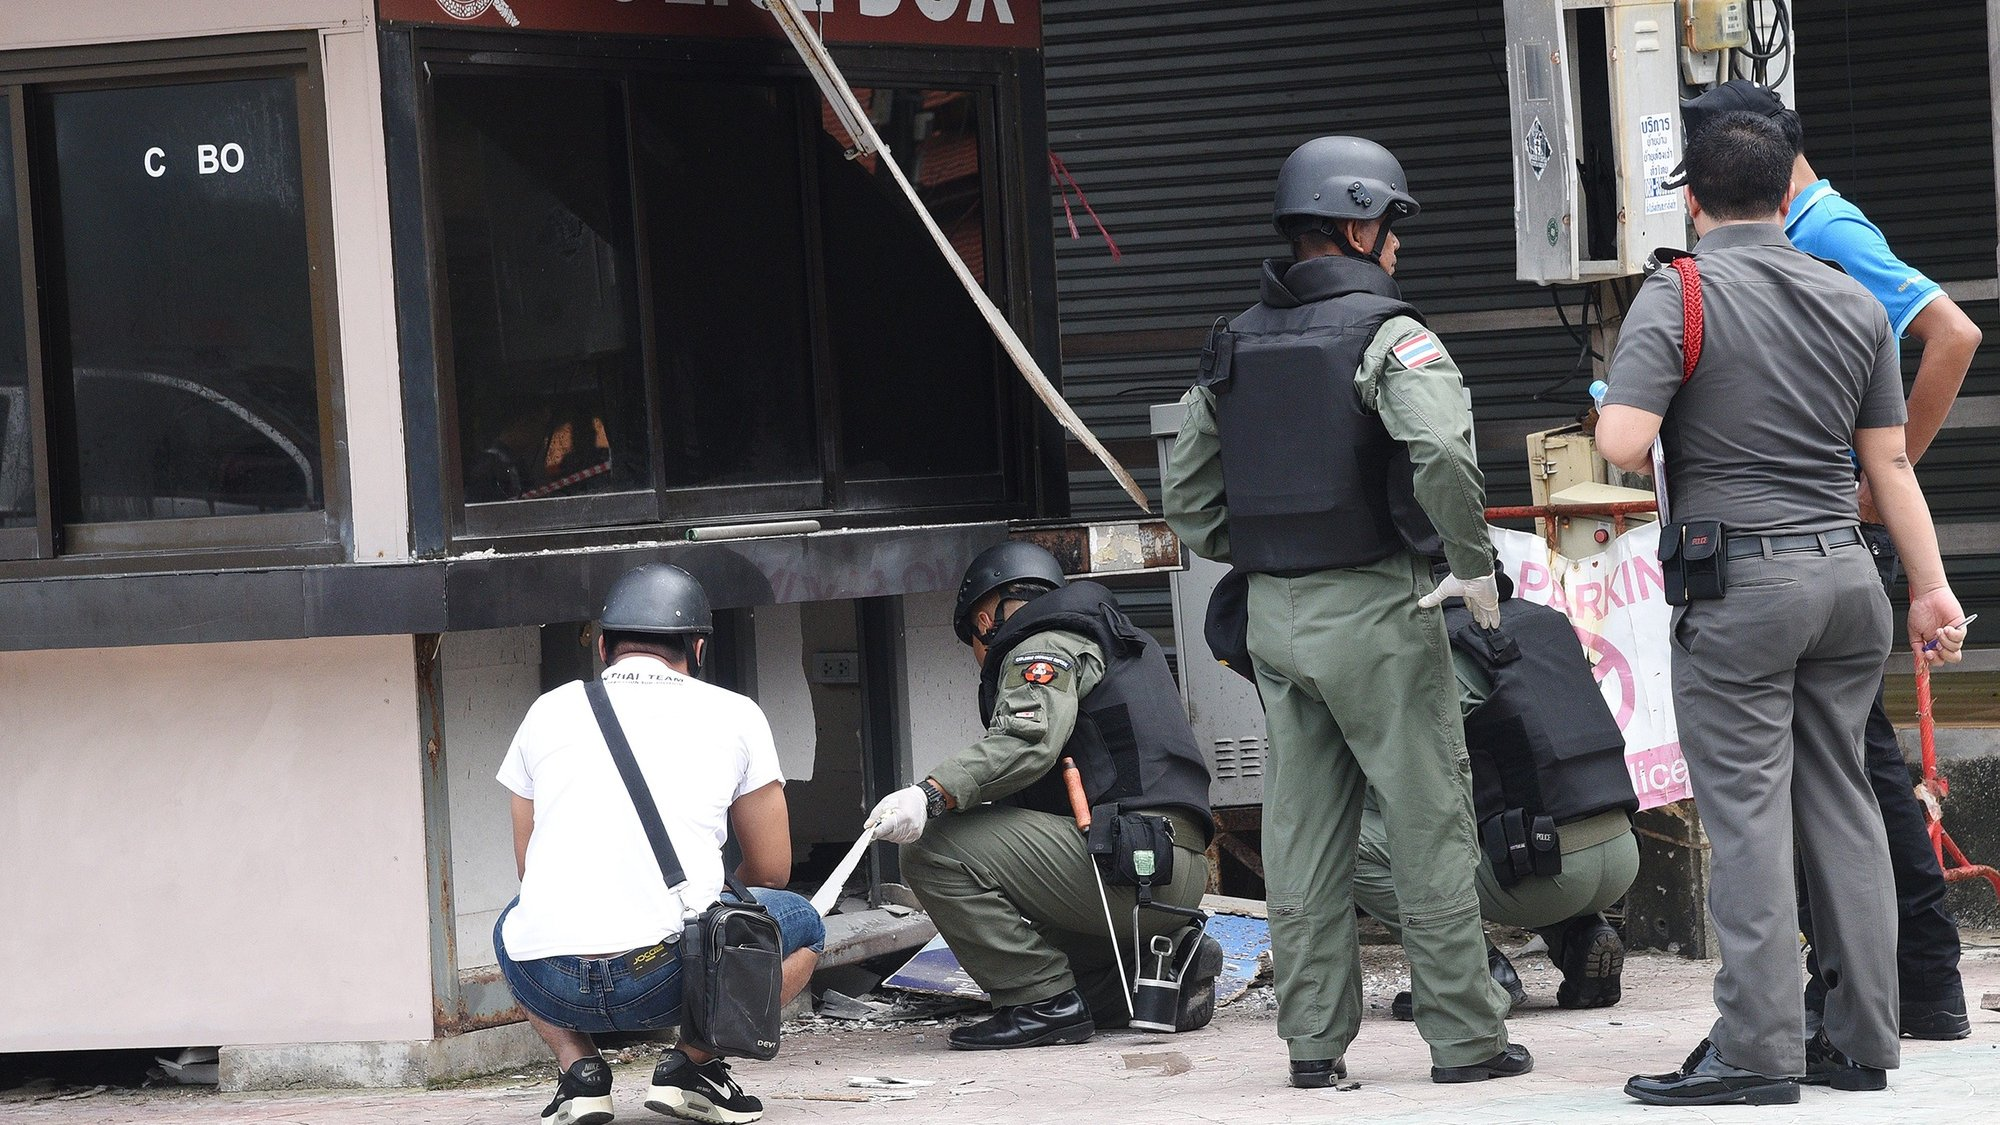 epa05476328 Thai members of the Explosive Ordnance Disposal (EOD) and other officials inspect the scene where a bomb exploded at a Police box station in the Patong beach area, in Phuket province, southern Thailand, 12 August 2016. Two bombs exploded in Phuket's Patong beach area where at least one was injured, police said. Thailand's authorities have increased security measures in crowded tourist areas after a series of bomb blasts in several provinces of Thailand, were launched in Trang province, Surat Thani province, Phuket province including in Hua Hin, where at least two people were killed and more than 20 injured after several bomb explosions.  EPA/DAILY NEWS THAILAND OUT -- NO COMMERCIAL OR EDITORIAL SALE IN THAILAND --  EDITORIAL USE ONLY/NO SALES/NO ARCHIVES